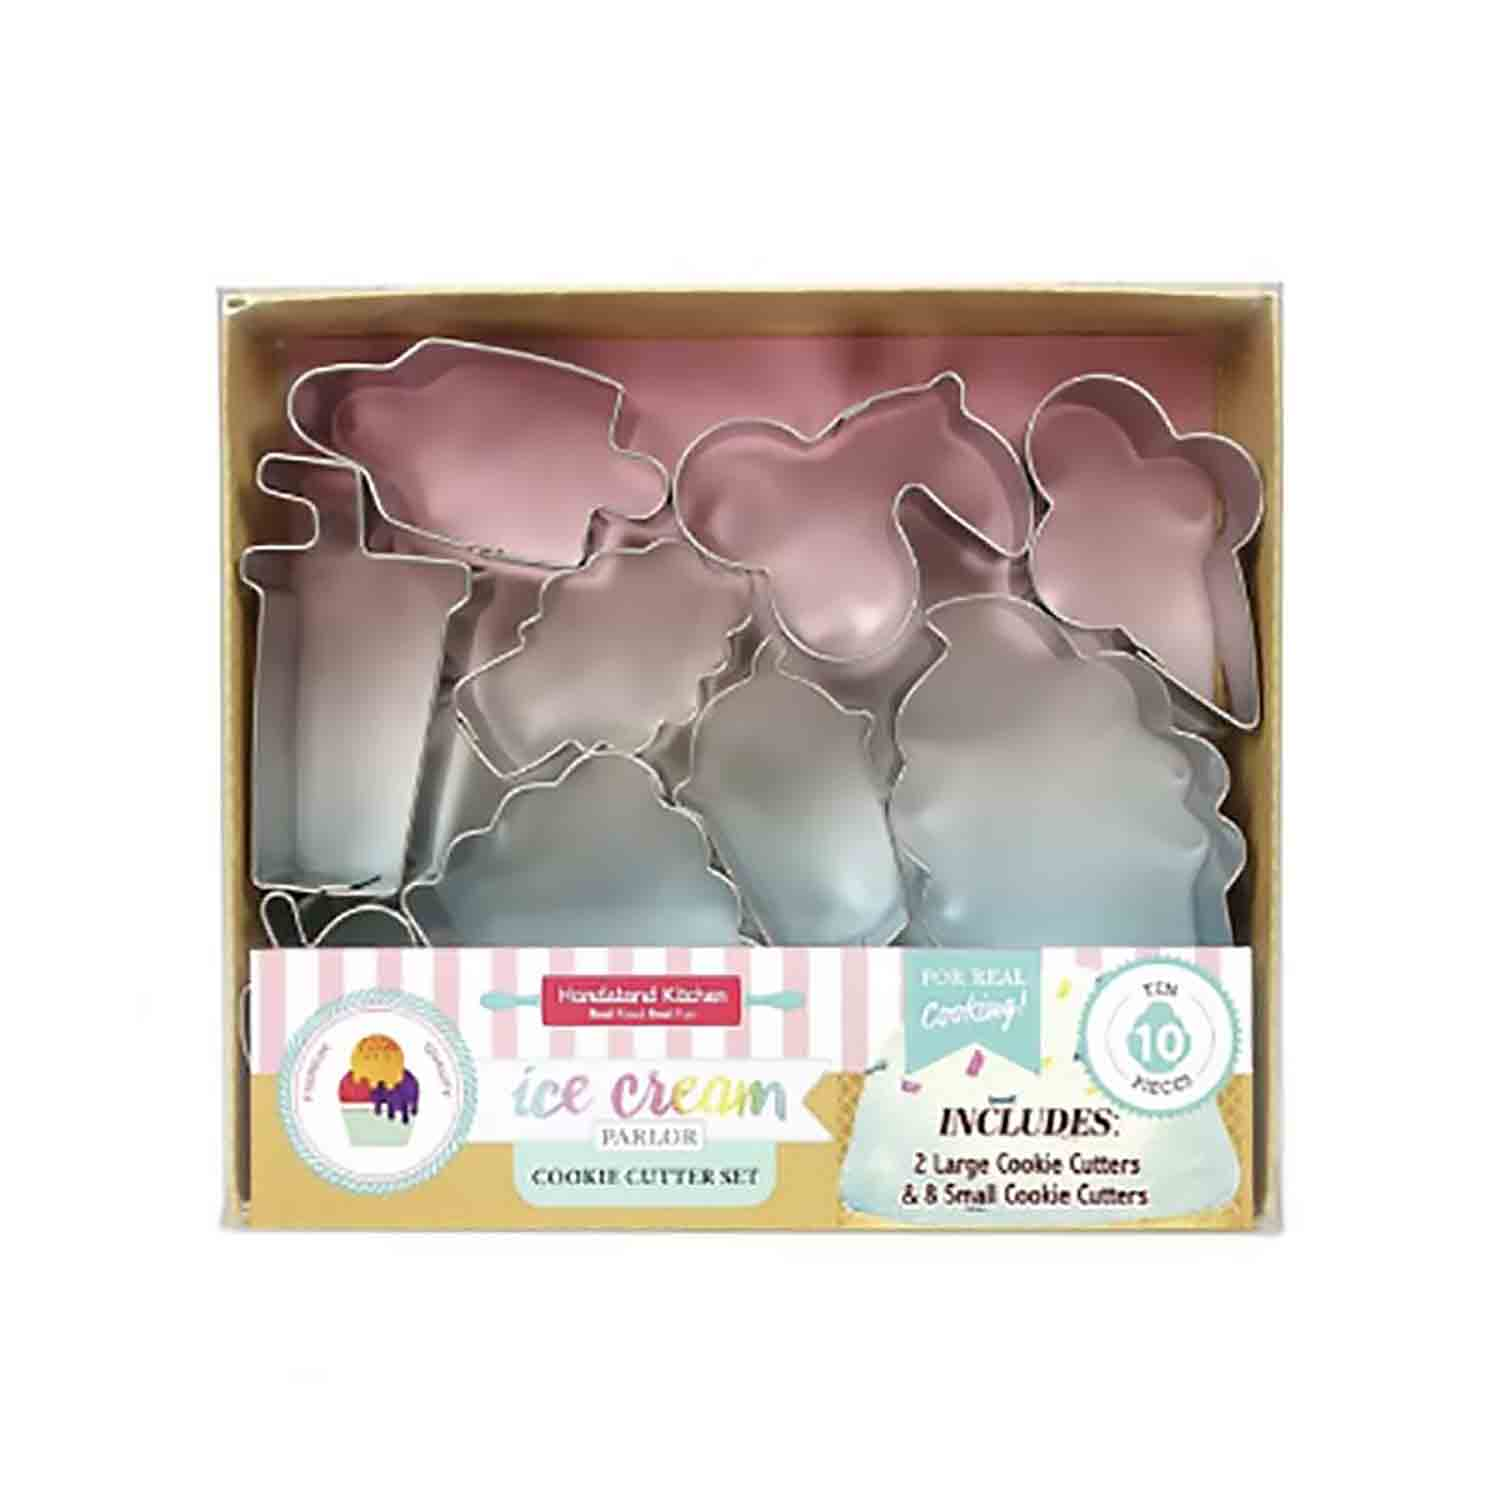 Ice Cream Parlor Cookie Cutter Set